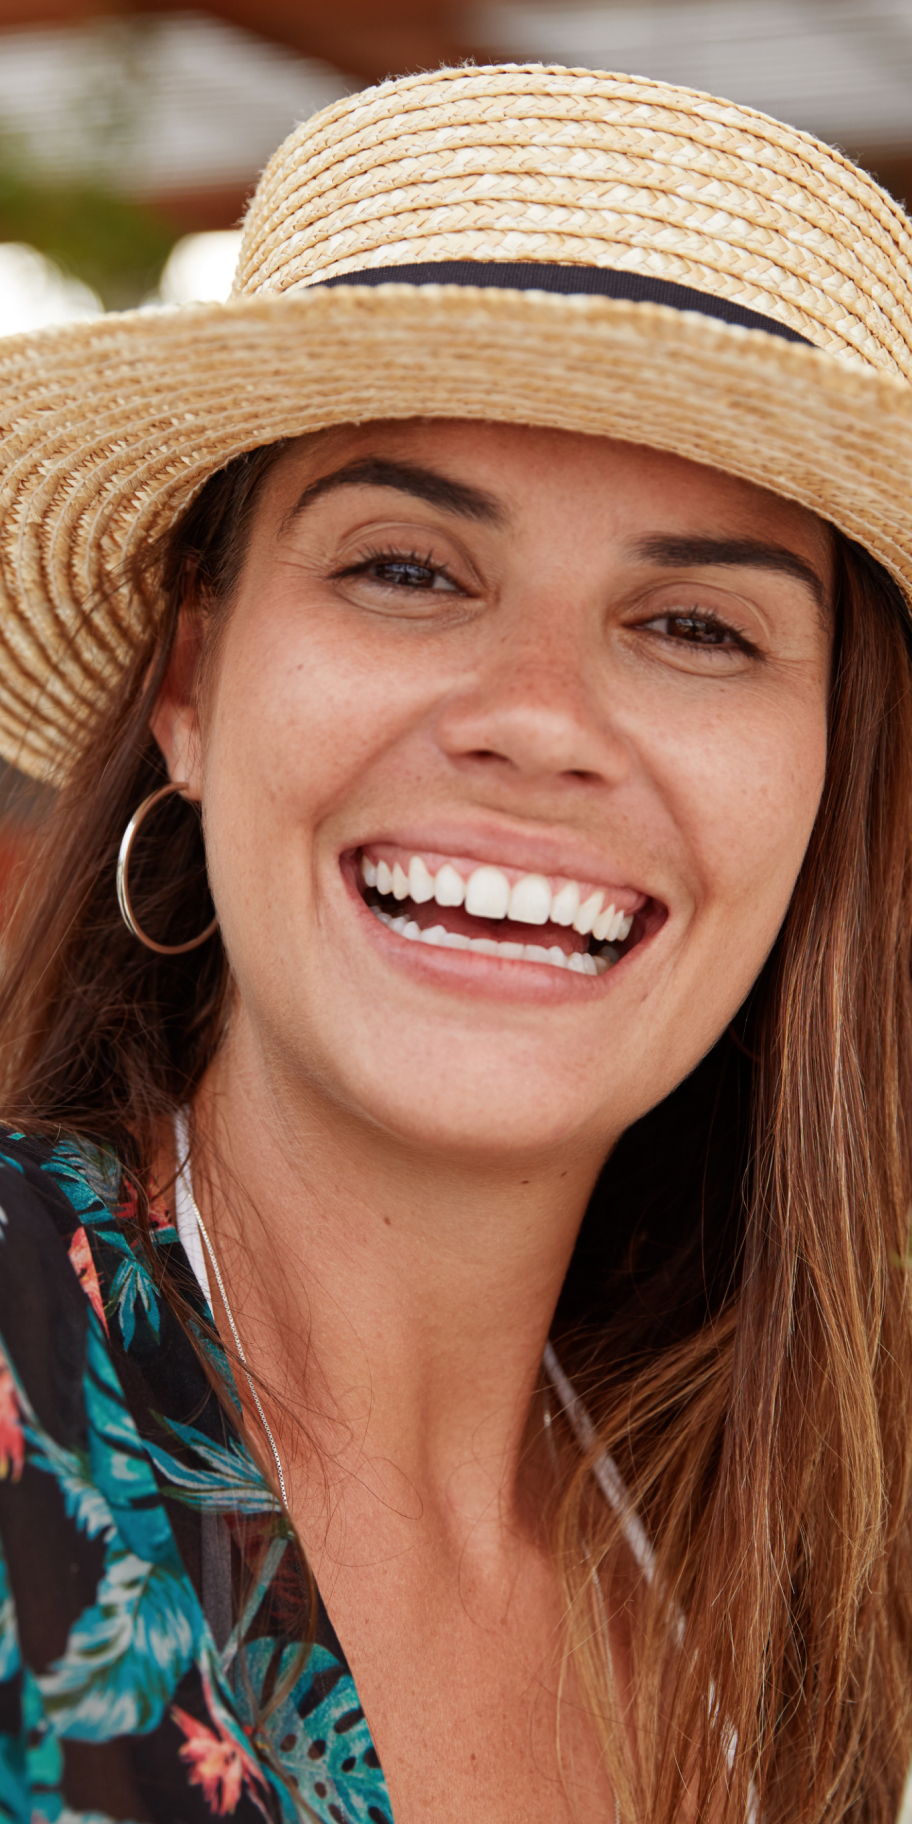 Woman wearing a hat smiling about to receive a gift card